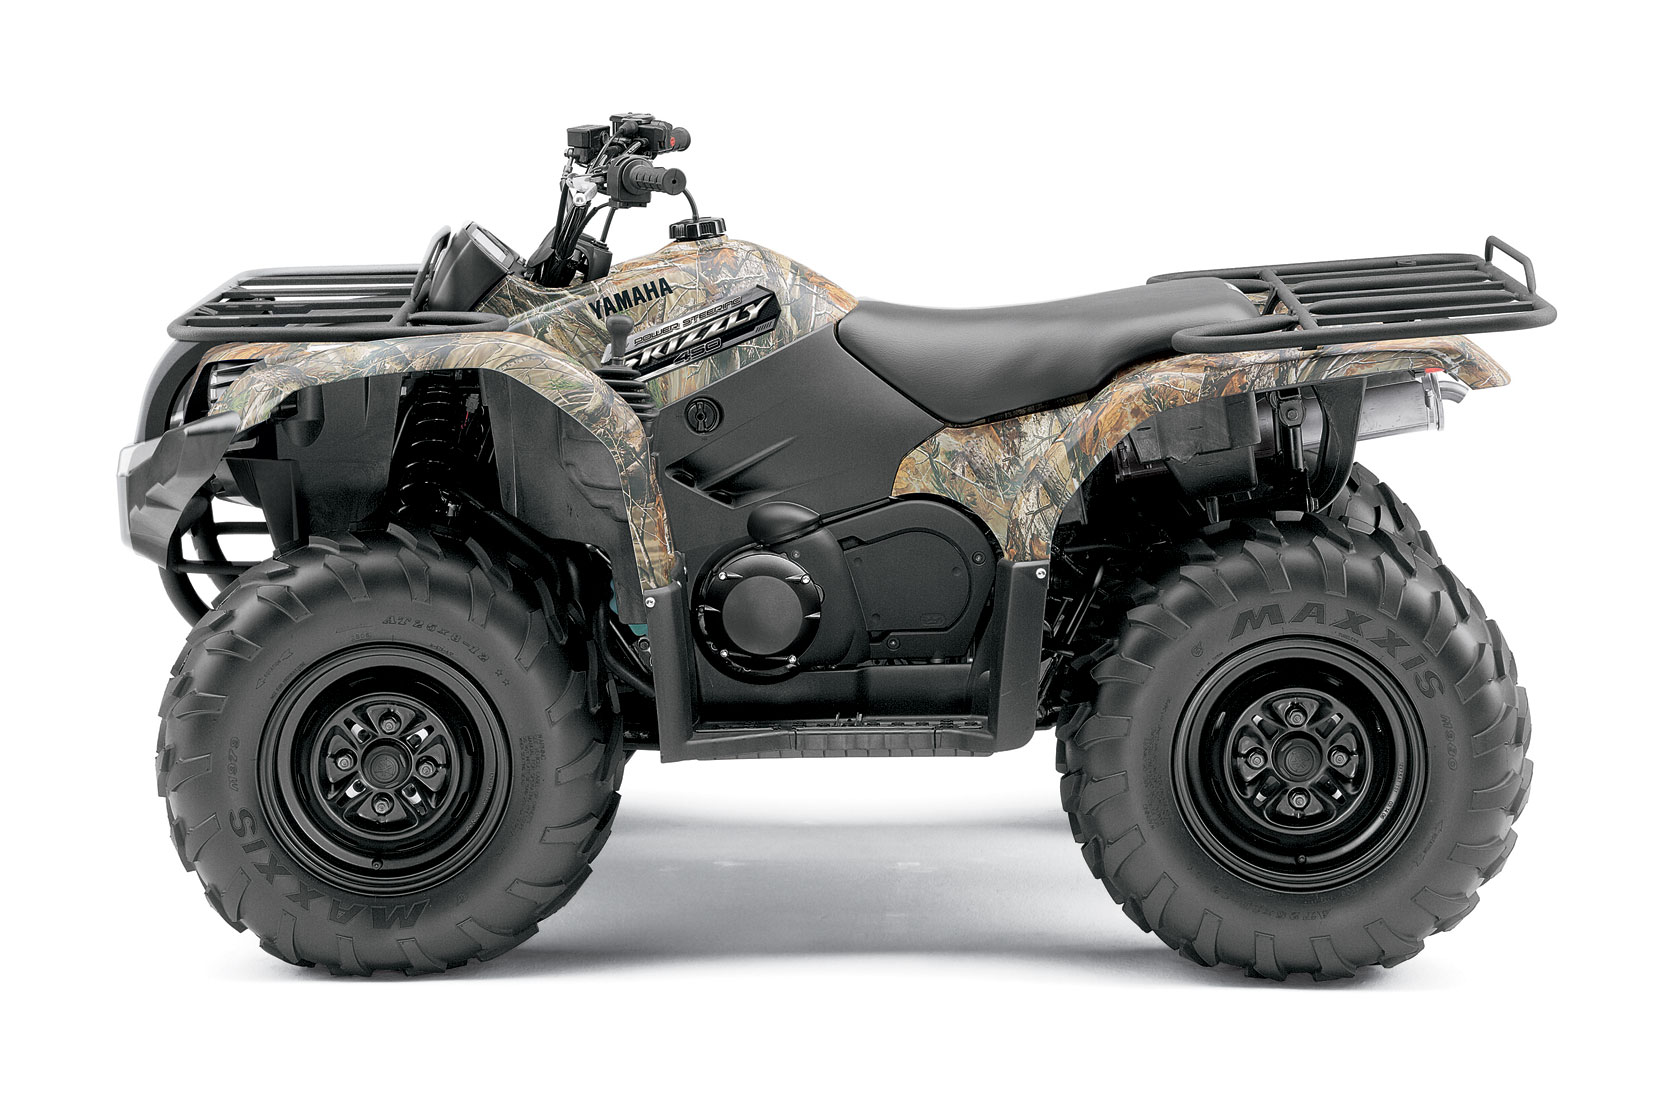 2011 Yamaha Grizzly 450 Wiring Diagram Just Diagrams Warrior 2012 Auto 4x4 Eps Review 2002 350